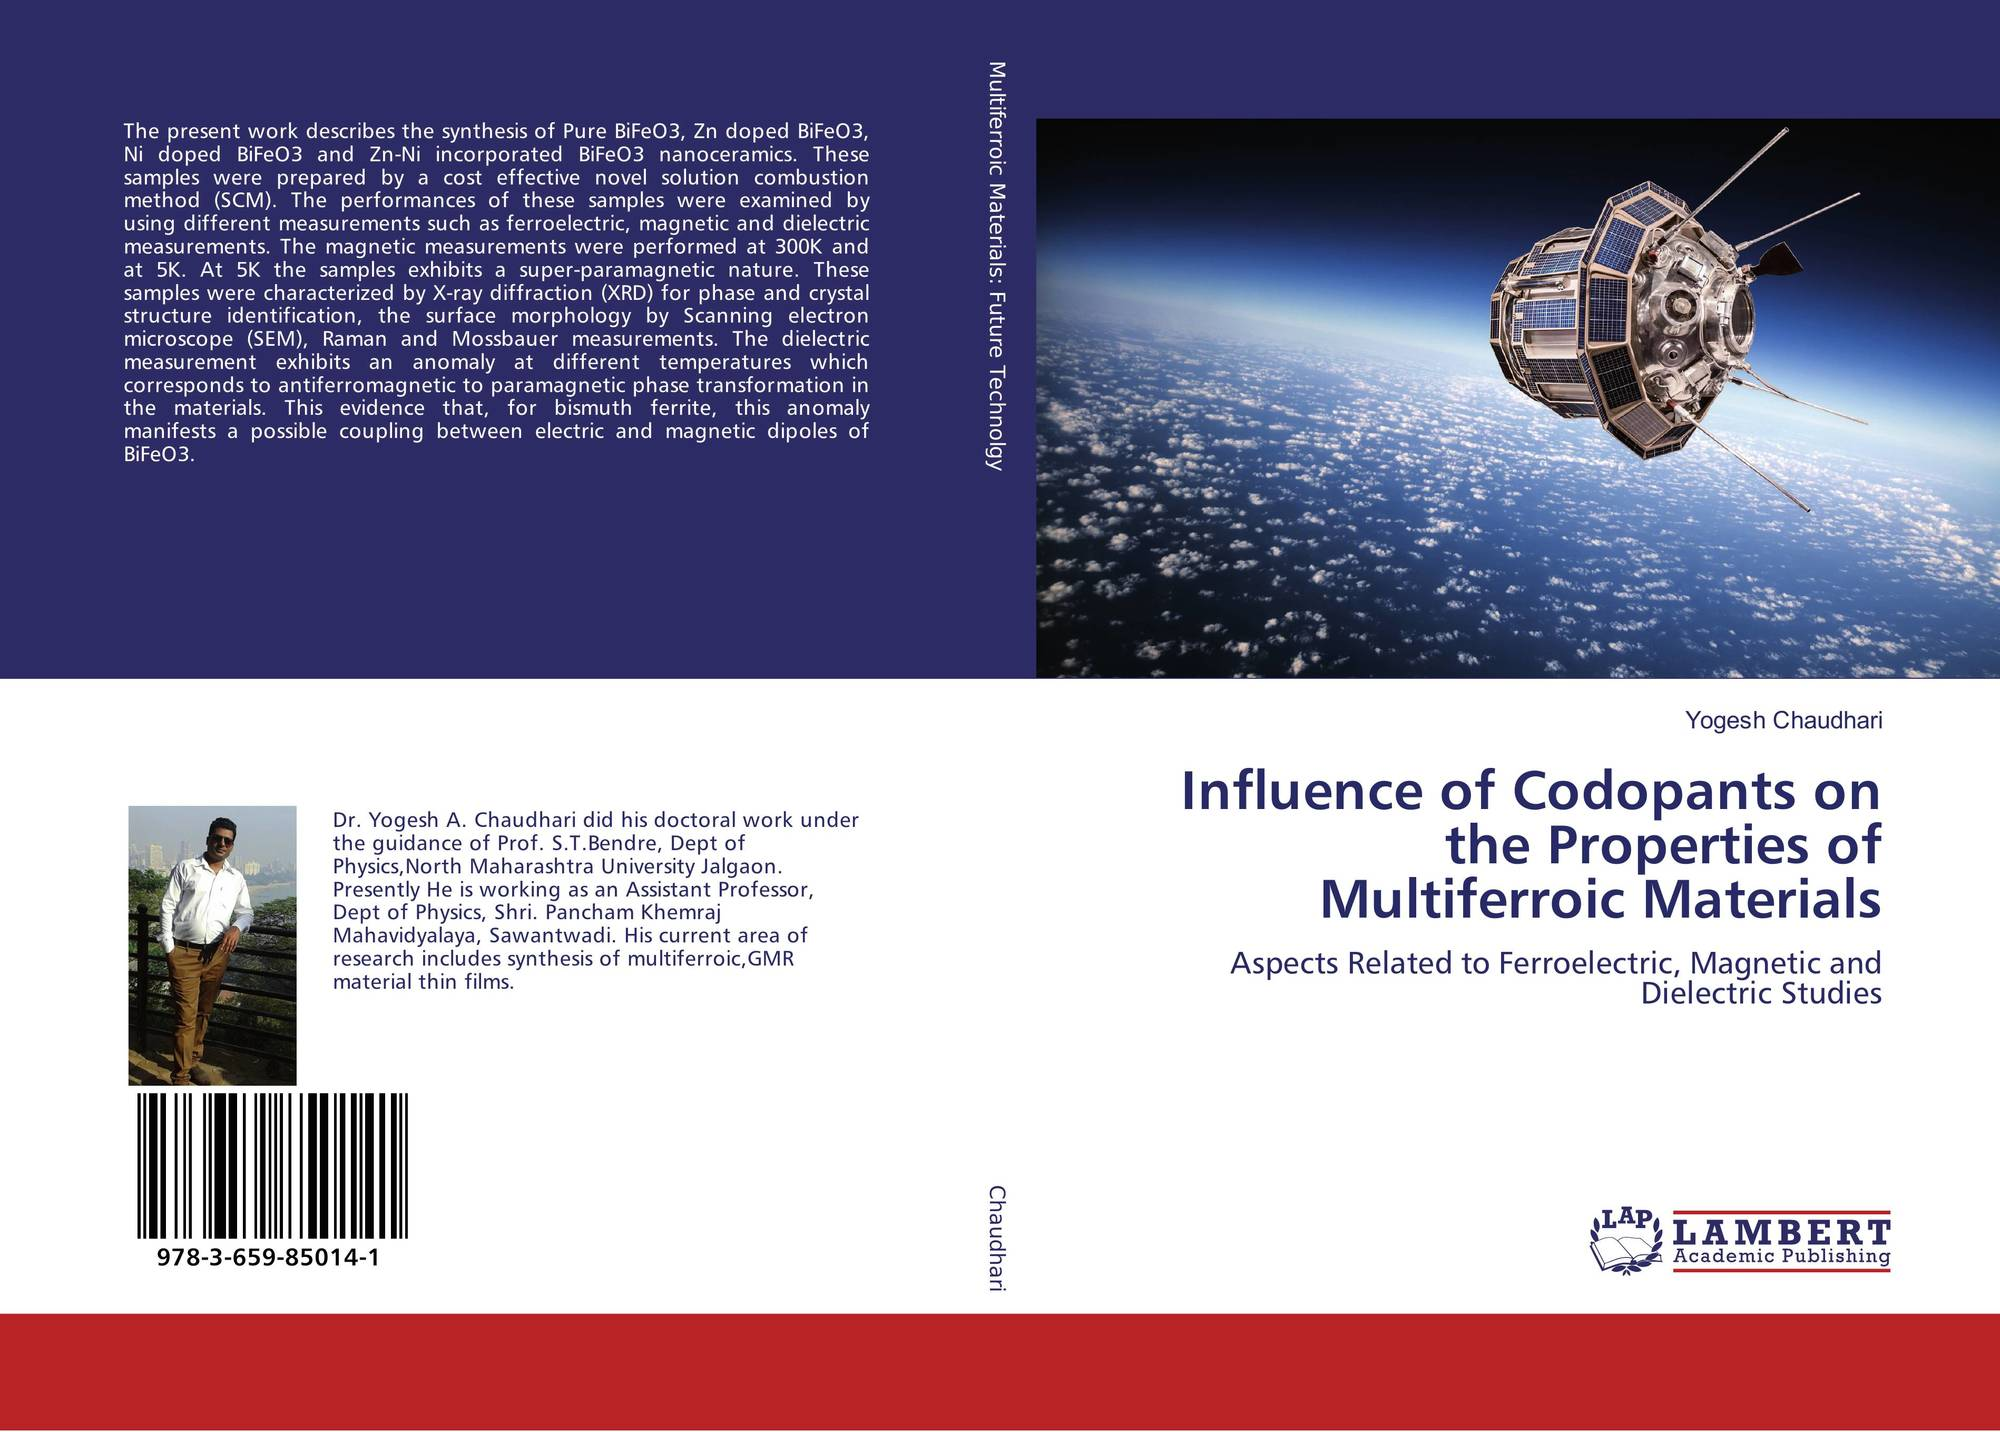 Influence of Codopants on the Properties of Multiferroic